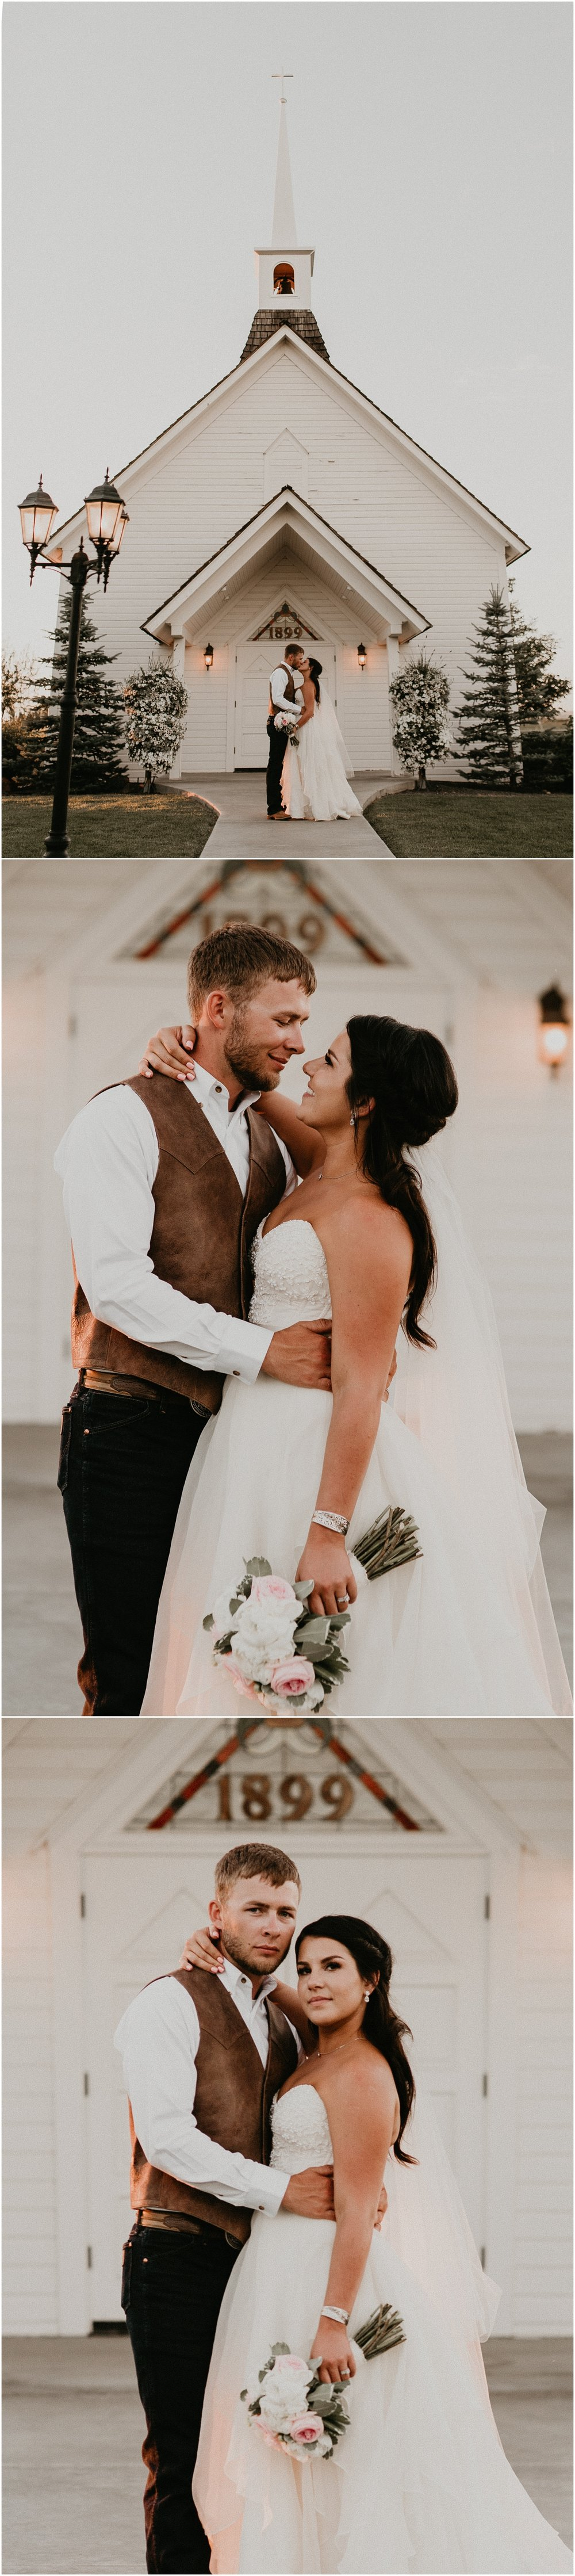 Boise Wedding Photographer Makayla Madden Photography Still Water Hollow Boise Wedding Venue Country Chic Rustic Bride and Groom Idaho Bride Summer Wedding Bridal Portraits Idaho White Chapel